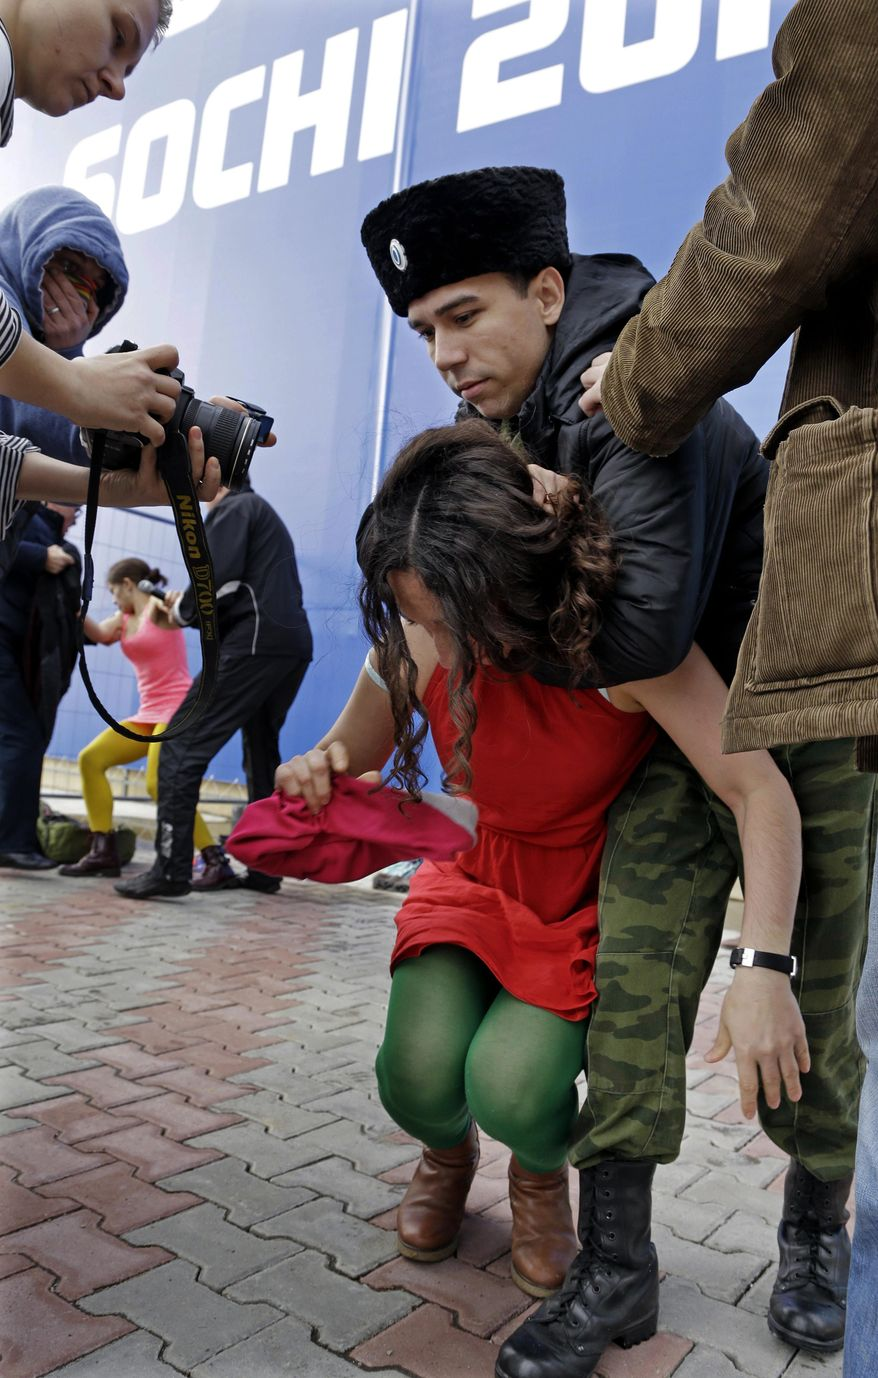 A member of the punk group Pussy Riot is restrained by a member of the Cossack militia  in Sochi, Russia, on Wednesday, Feb. 19, 2014. Cossack militia attacked the Pussy Riot punk group with horsewhips on Wednesday as the group tried to perform under a sign advertising the Sochi Olympics. The group had gathered to perform in a downtown Sochi restaurant, about 30km (21miles) from where the Winter Olympics are being held.They left the restaurant wearing bright dresses and ski masks and had only been performing for a few seconds when they were set upon by Cossacks. (AP Photo/Morry Gash)